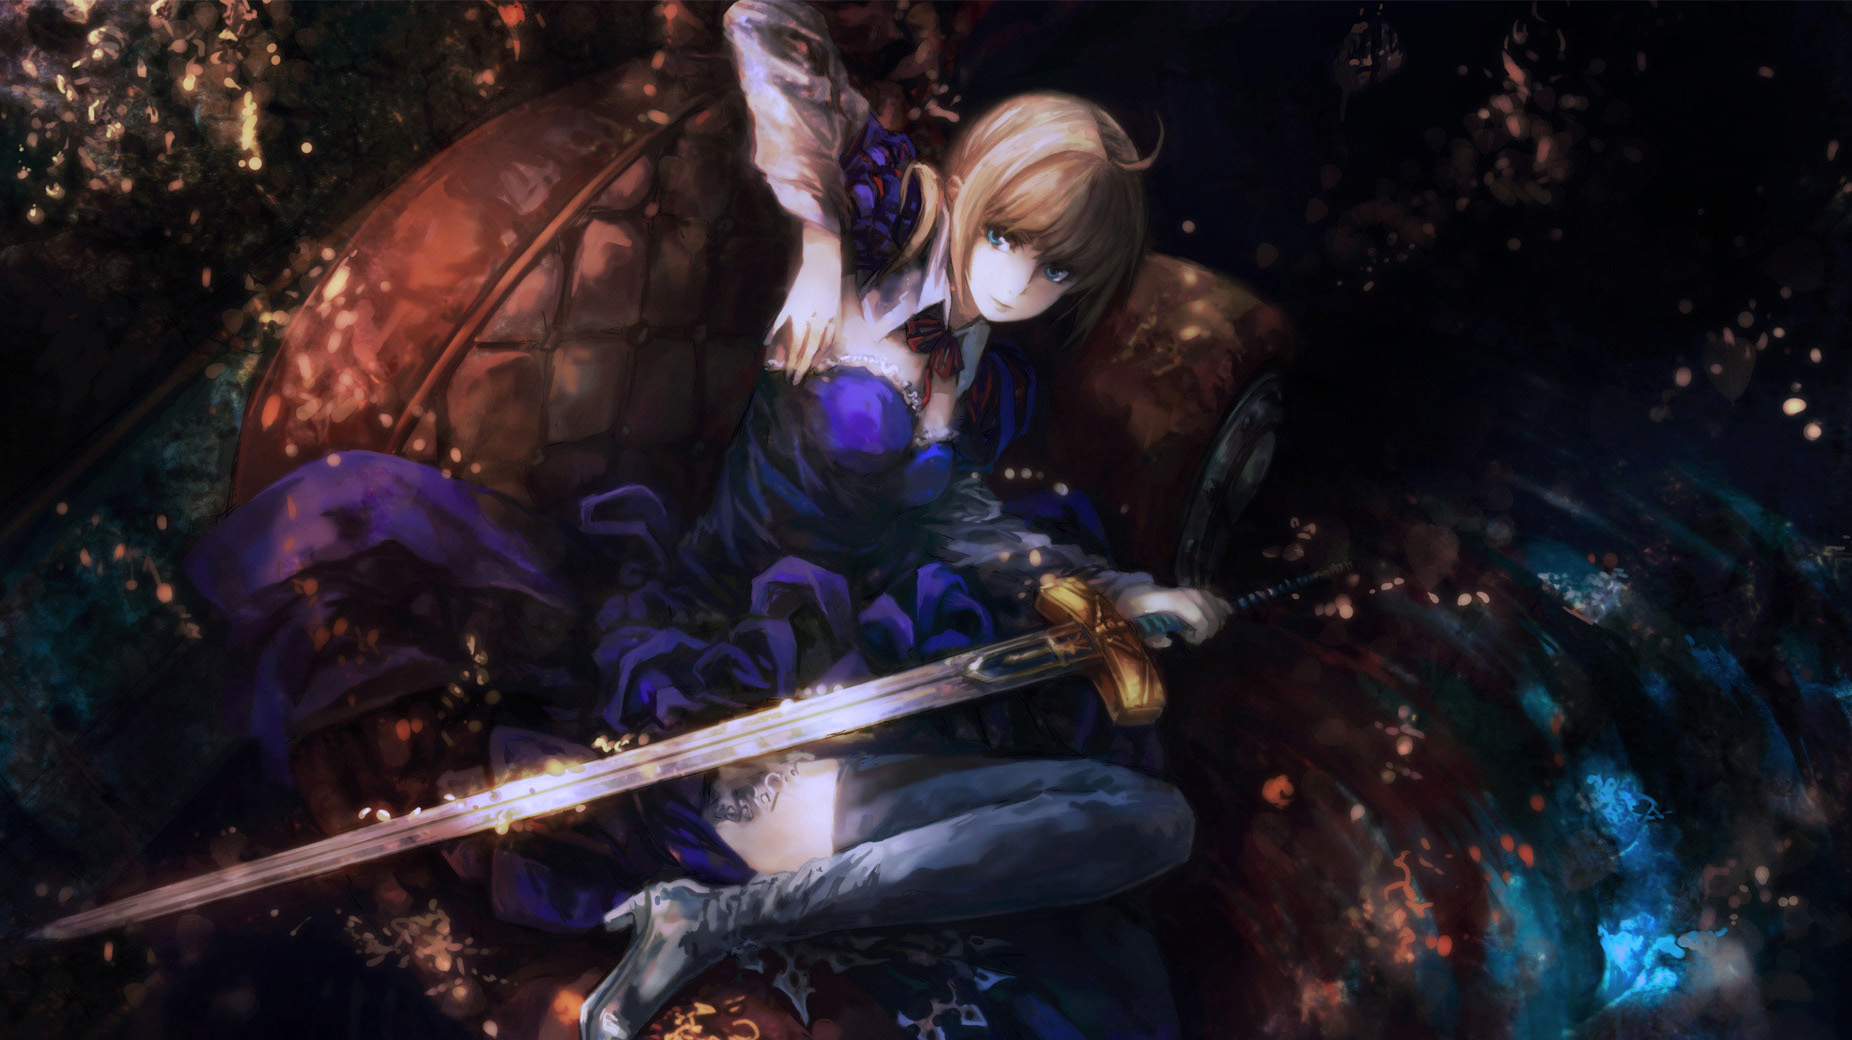 Fate Zero Hd Wallpaper Posted By John Johnson